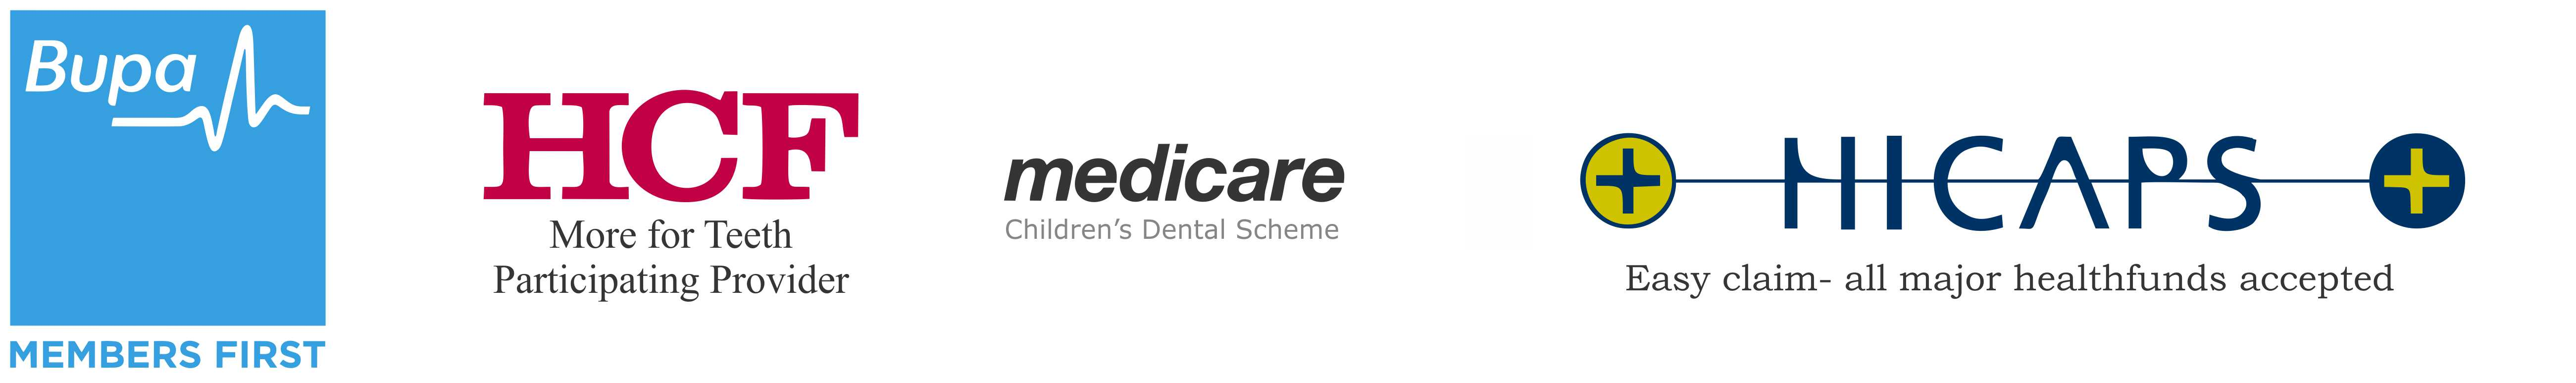 dentist for bupa members first and hcf more for teeth. medicare kids.